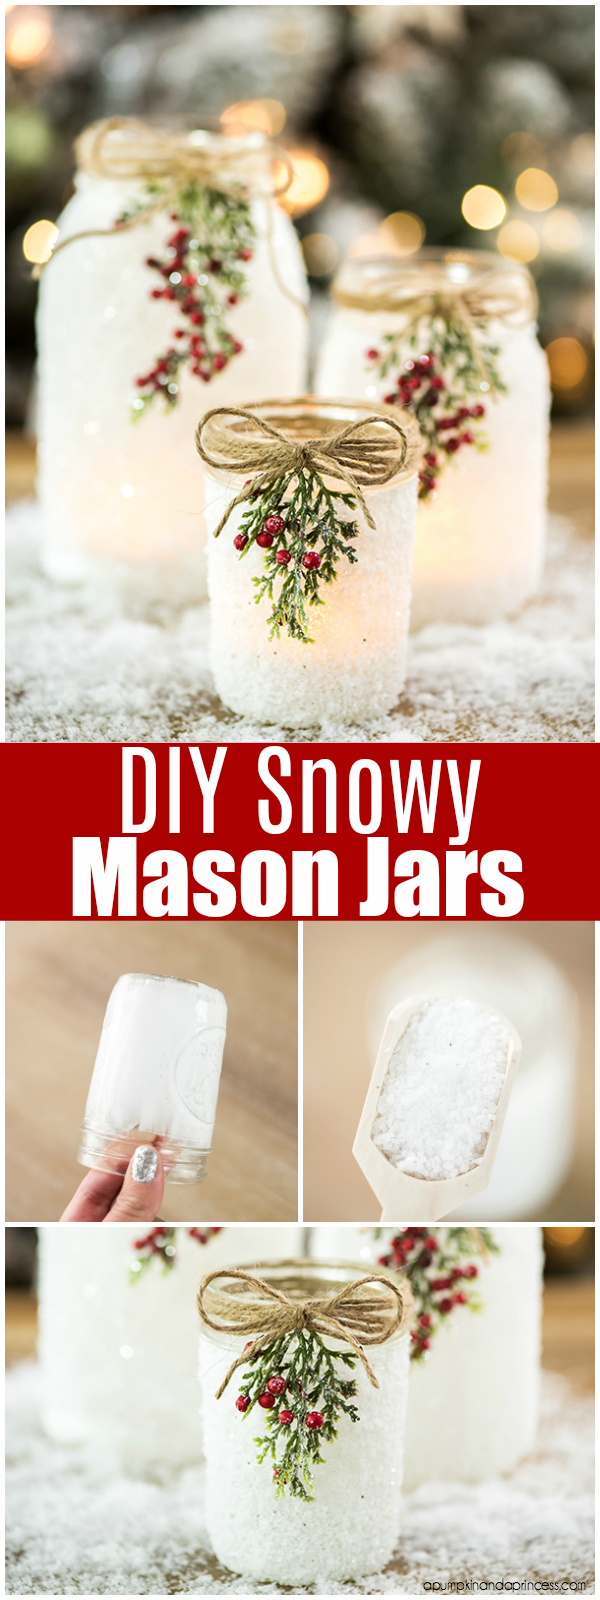 Holiday archives young busy mom diy snowy mason jars create faux snow covered mason jar luminaries for solutioingenieria Choice Image